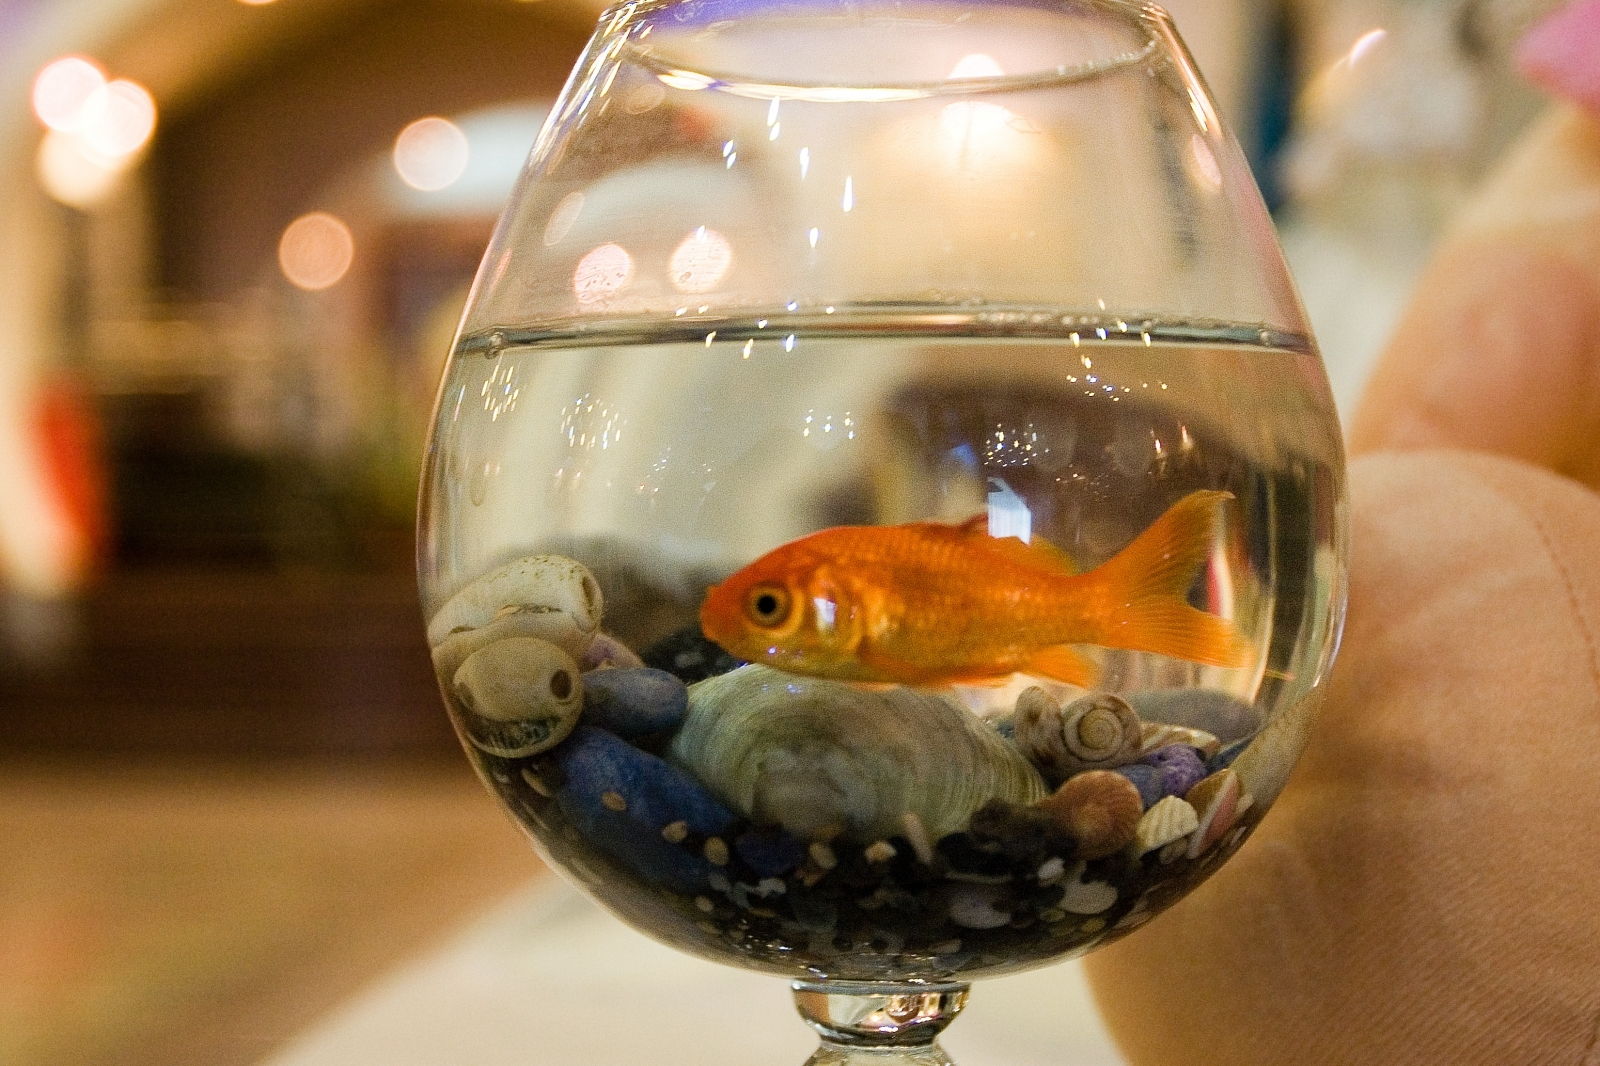 Goldfish use alcohol to survive in icy waters, scientists find